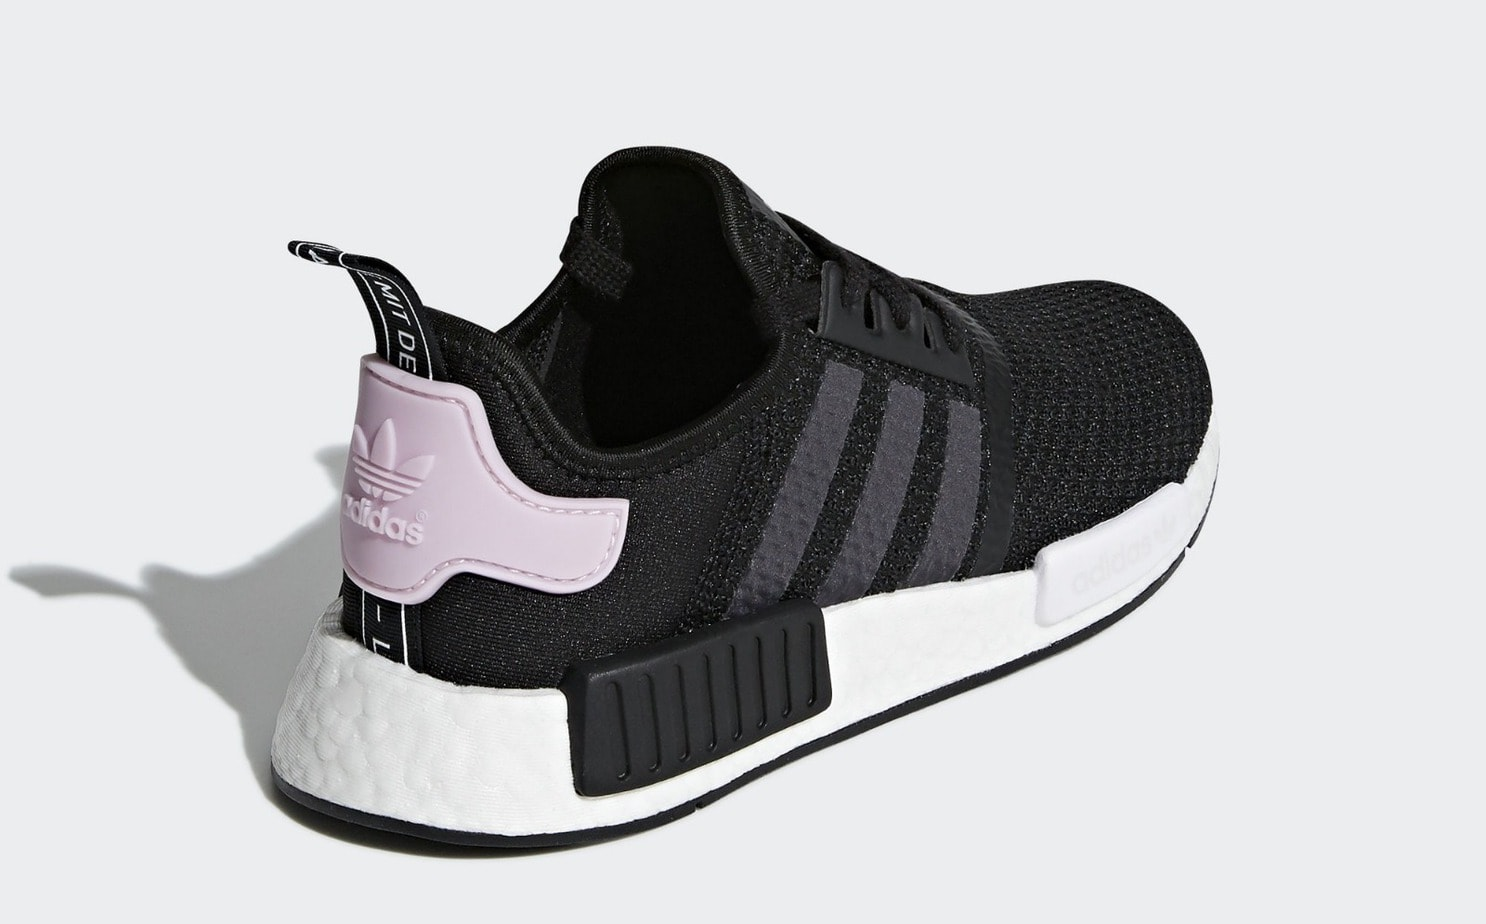 b5015655acbea adidas NMD R1 Release Date  Coming Soon Price   130. Color  Core Black FTWR  White Orchid Tint